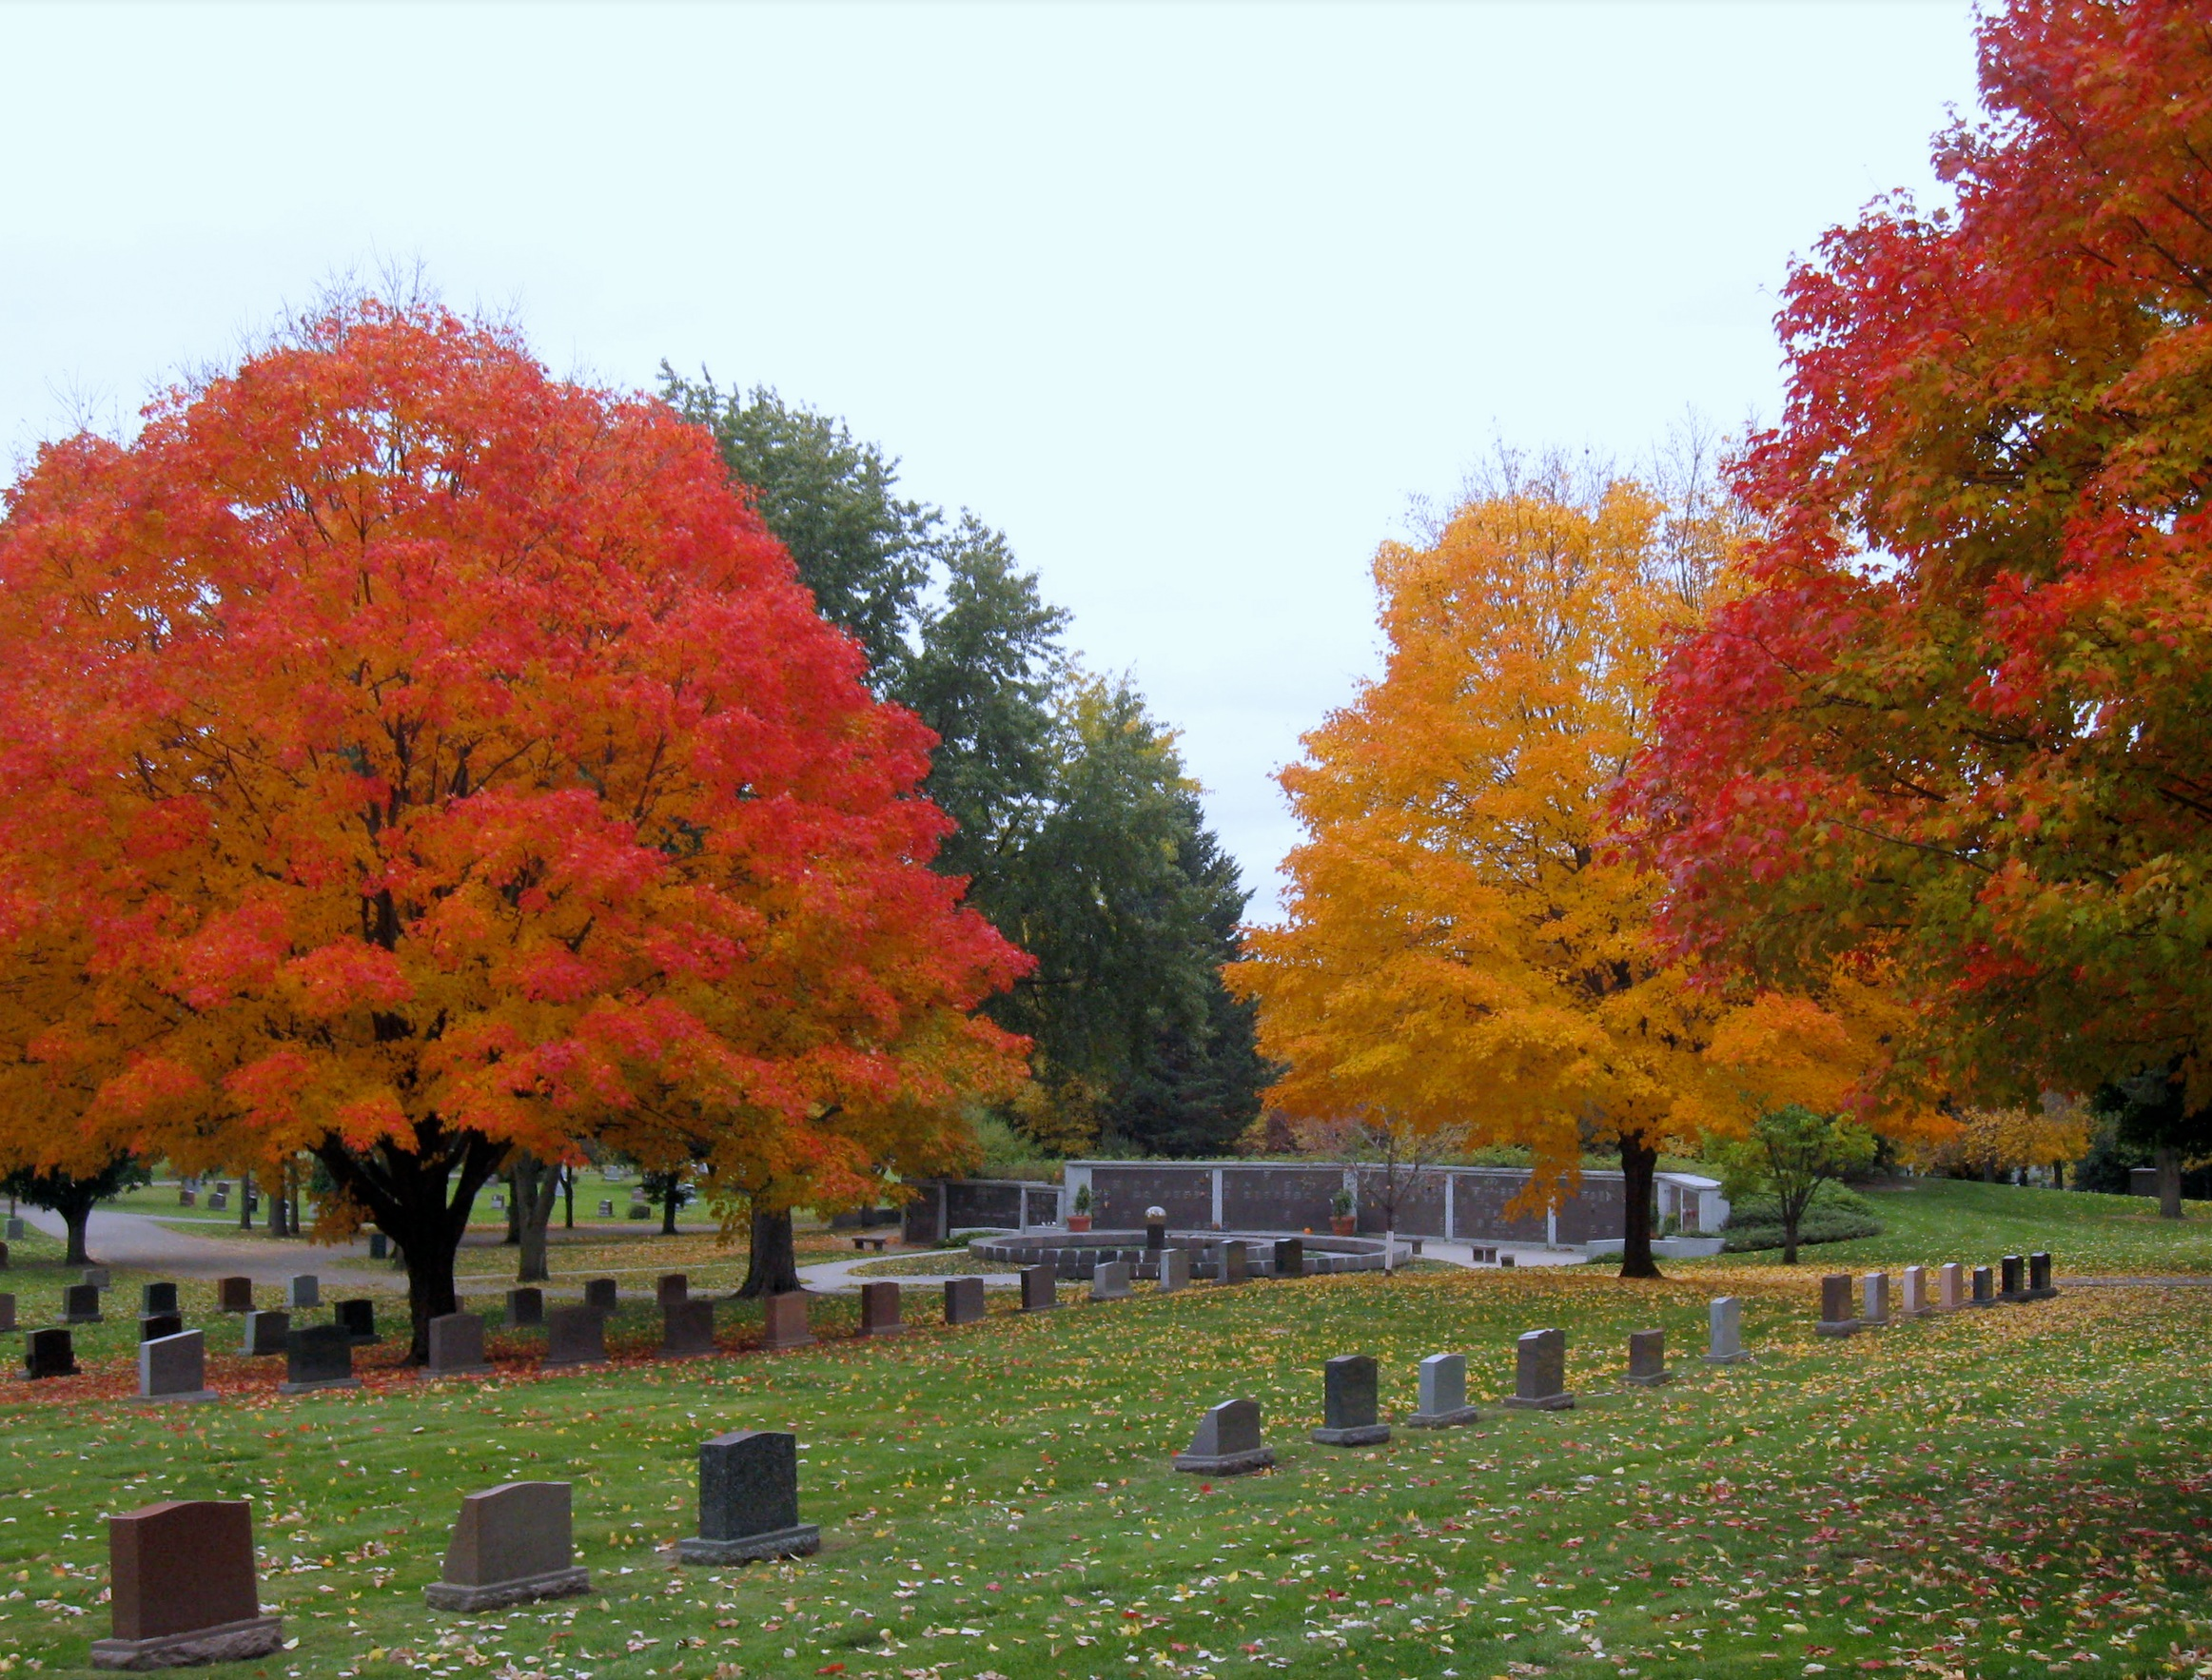 Cemetery in the fall with the leaves changing colors